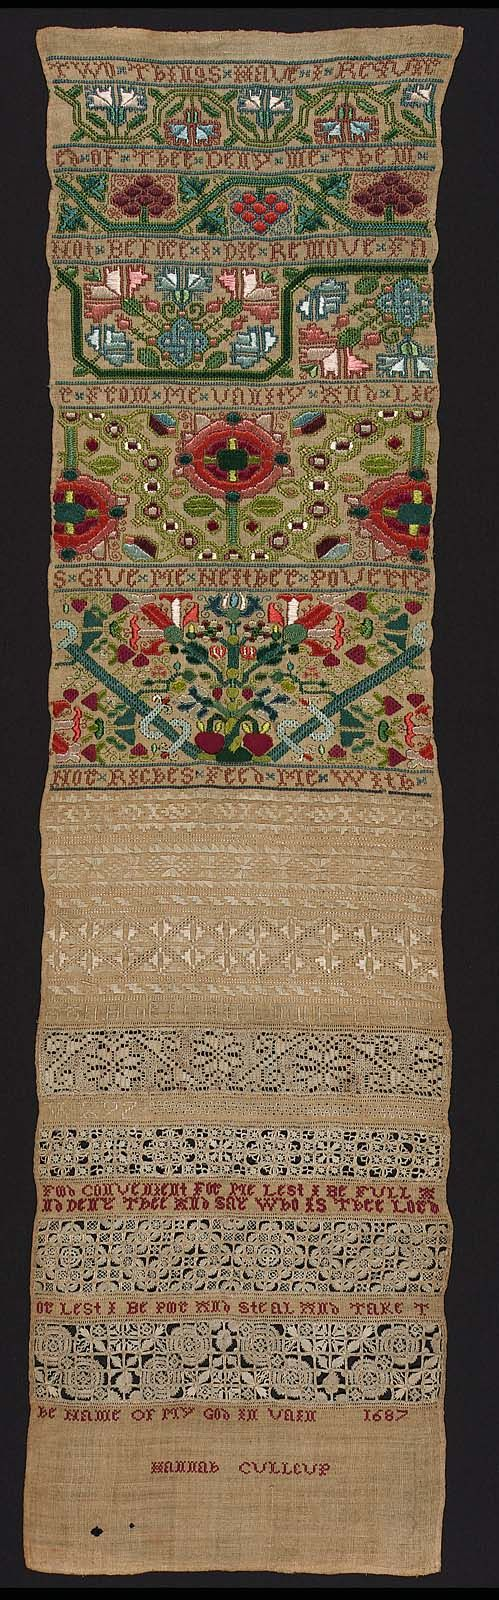 Hannah Culleup 1687, Band Sampler | Museum of Fine Arts, Boston